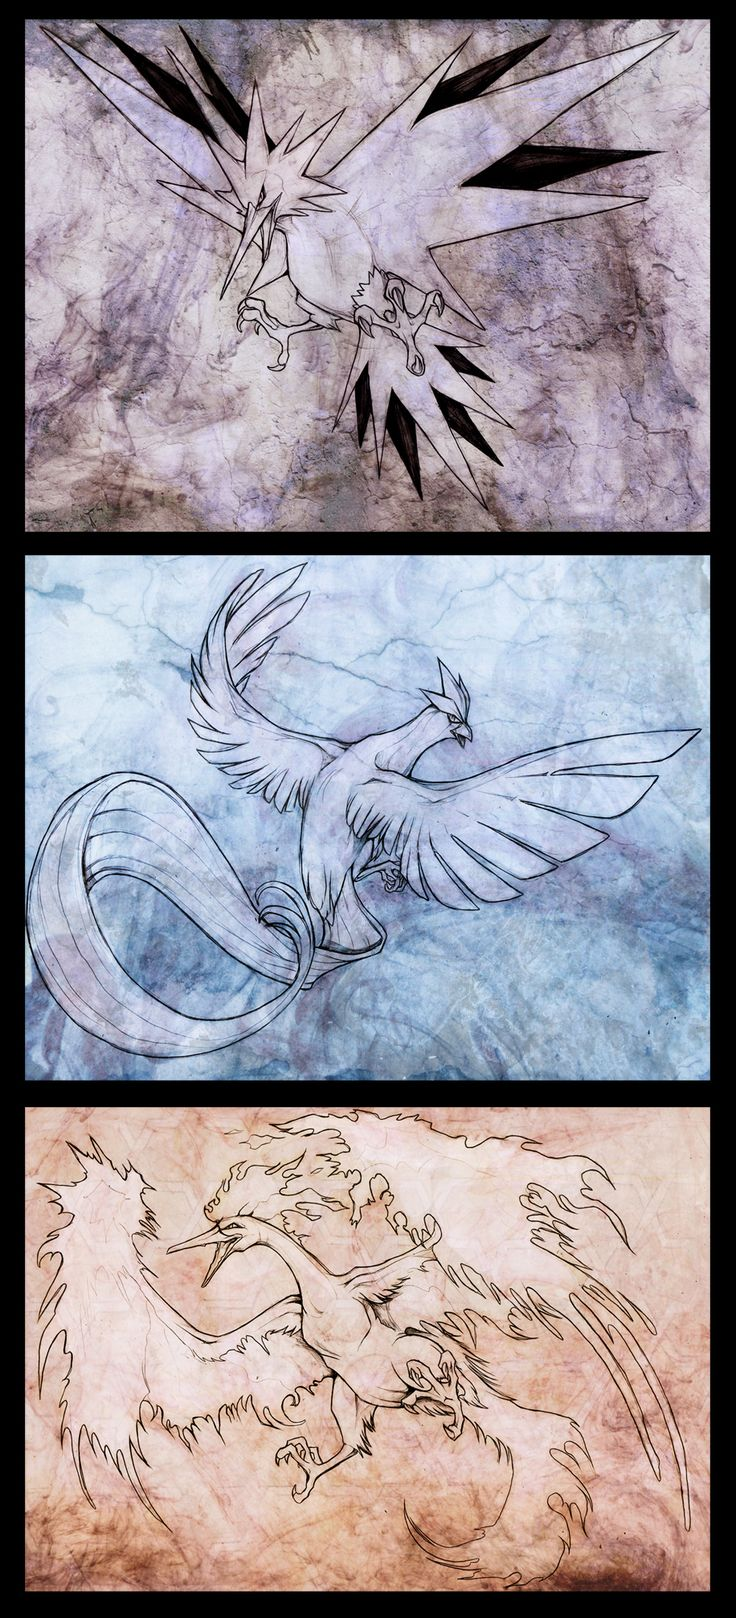 Legendary Birds by Exileden.deviantart.com on @deviantART -----Zaptos, Articuno, and Moltres--------